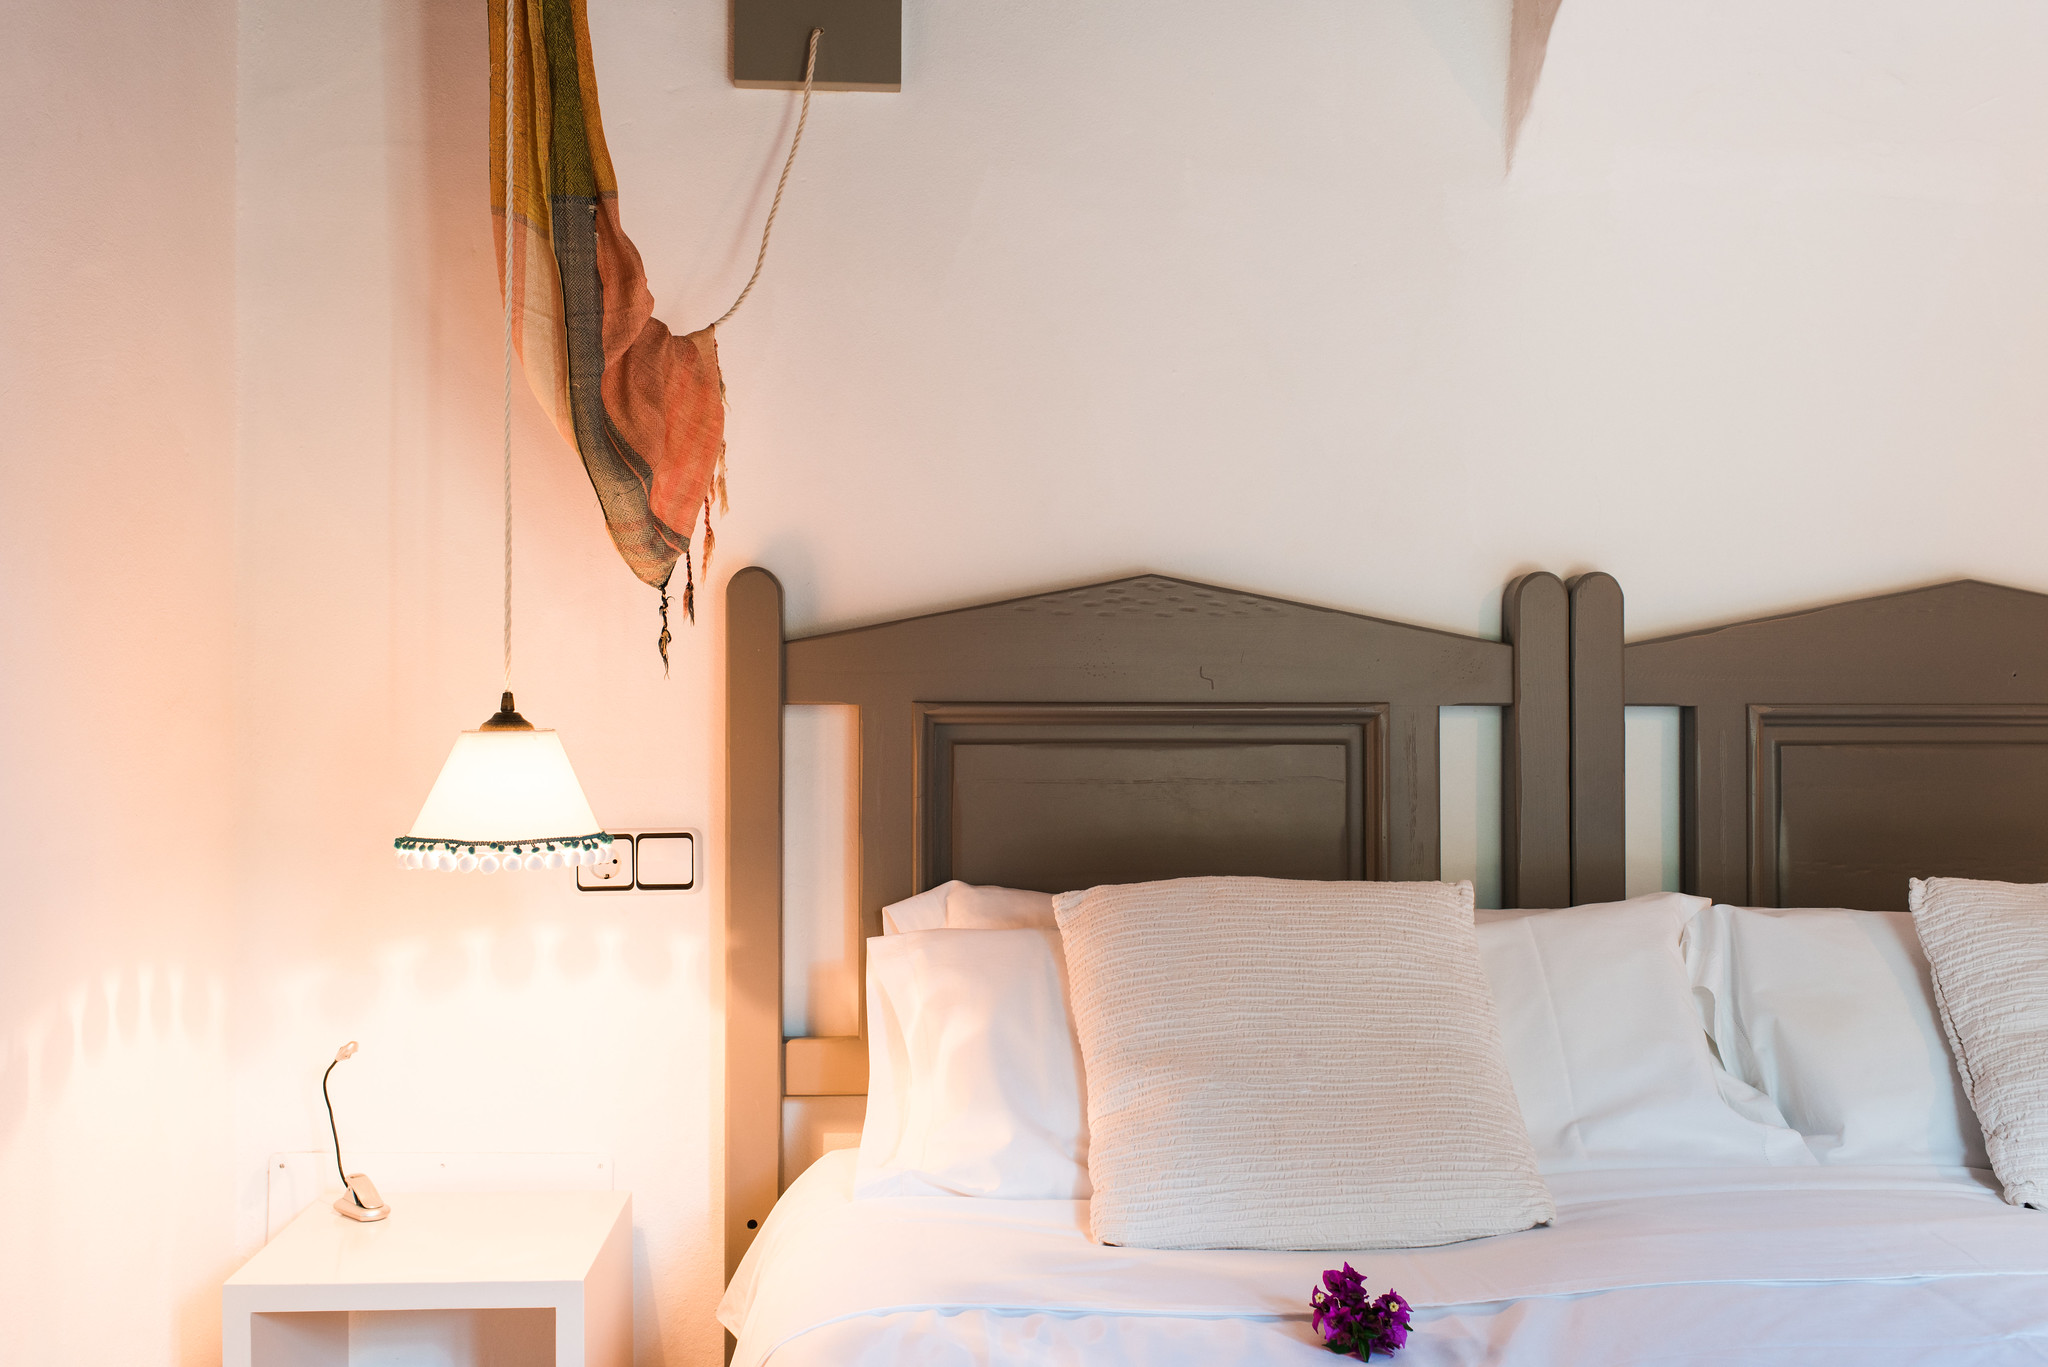 https://www.white-ibiza.com/wp-content/uploads/2020/05/white-ibiza-villas-canblay-bedroom2.jpg